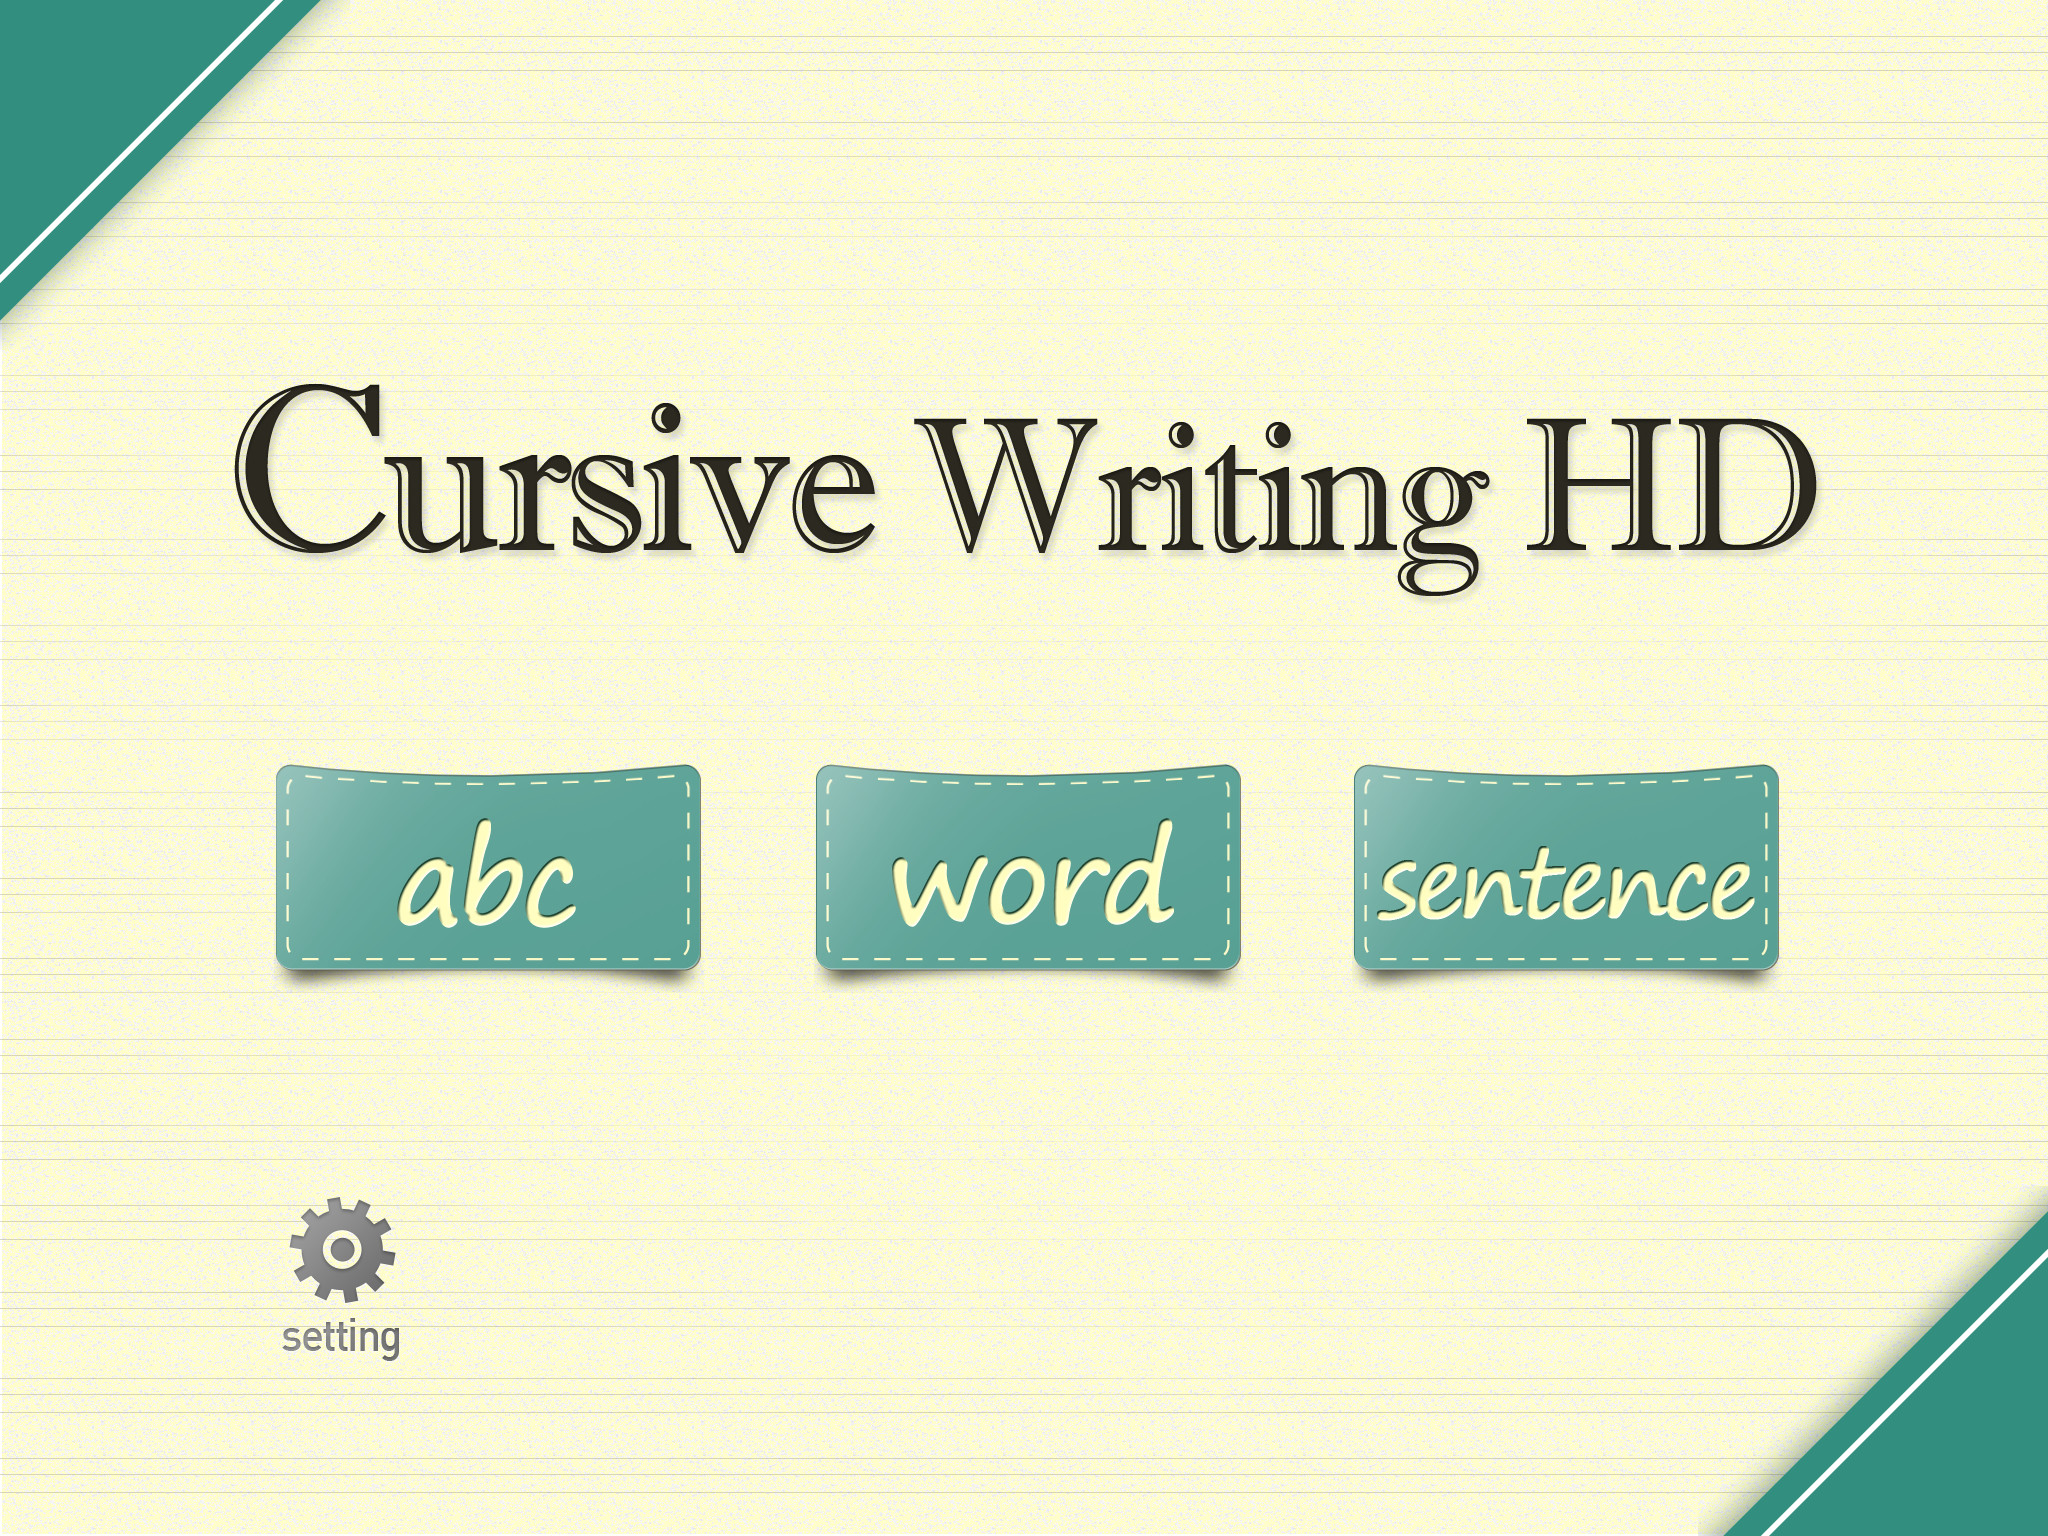 2048x1536 Good Free App of the Day #2: Cursive Writing HD